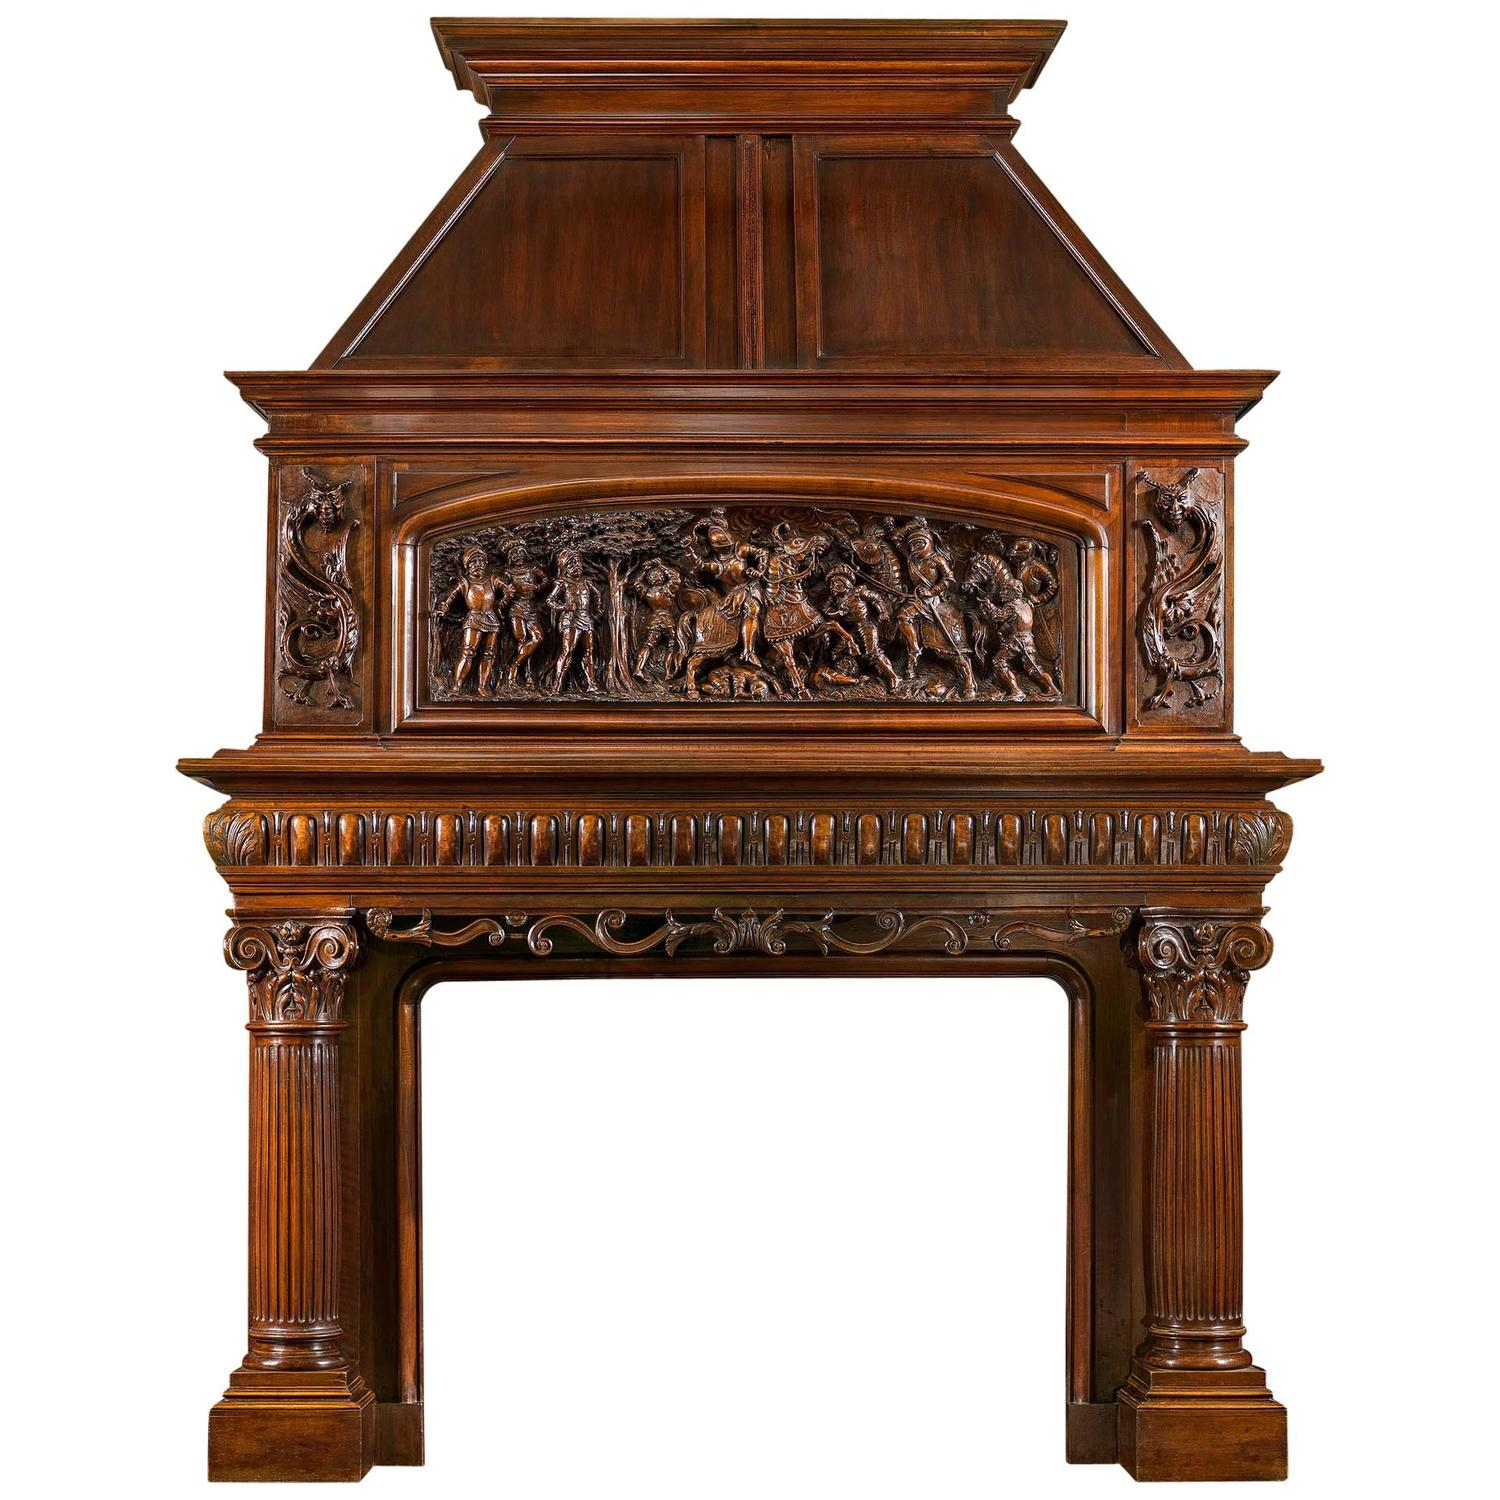 For Sale on 1stdibs - The Italian Wars A substantial and imposing richly carved French walnut trumeau chimneypiece. The generously moulded cornice lies above a dramatically